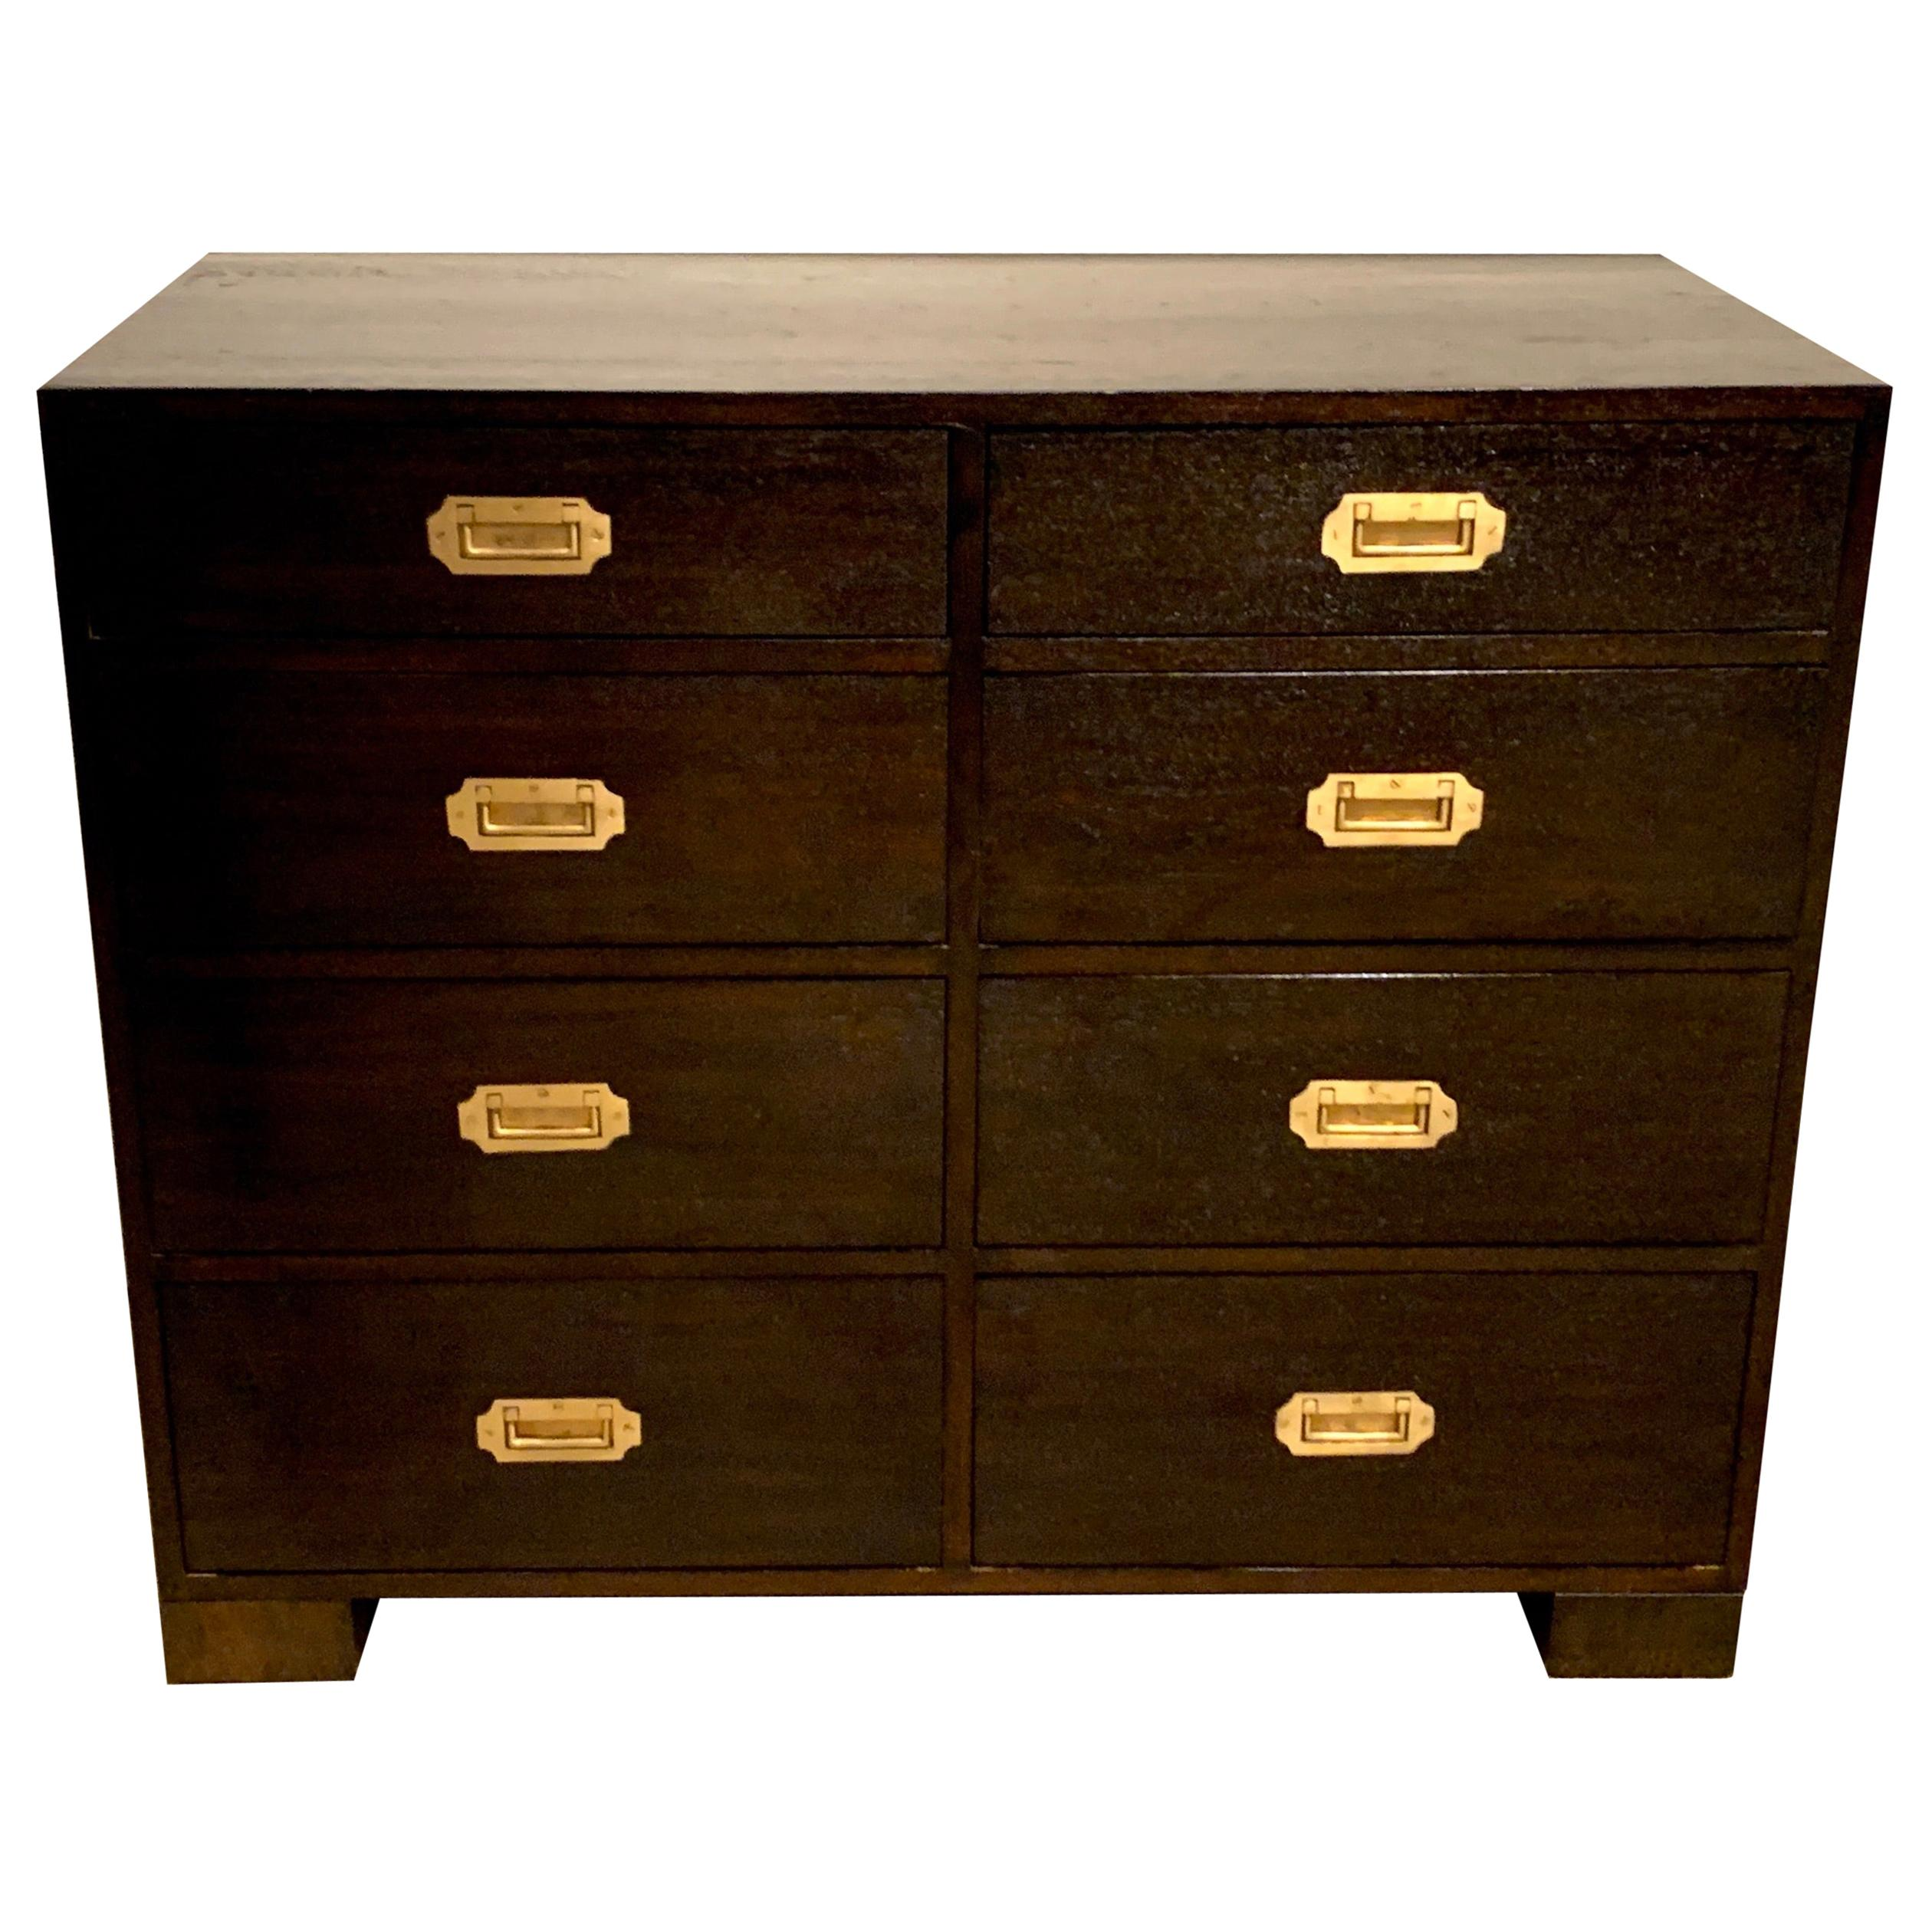 Midcentury Black-Stained Hardwood and Brass Campaign Style Chest